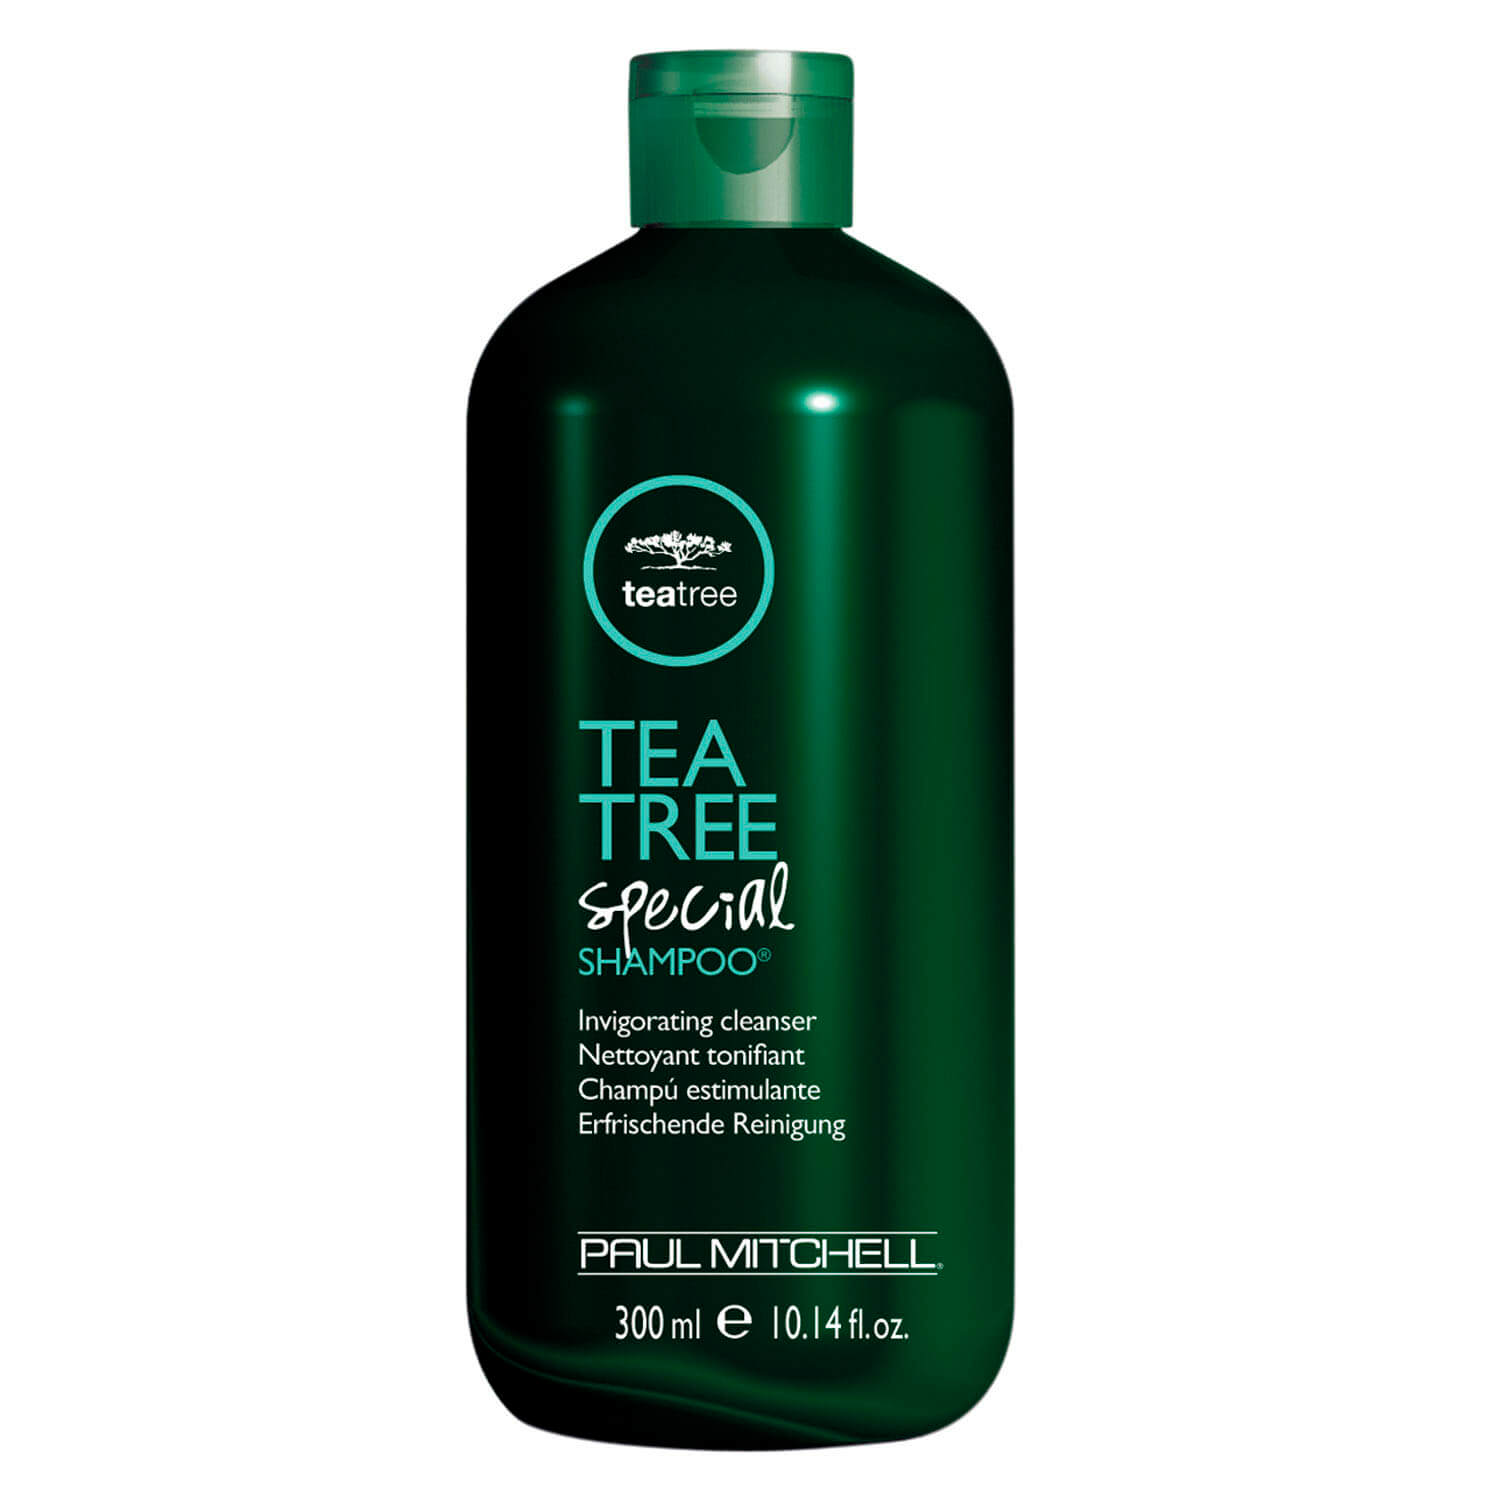 Tea Tree Special - Shampoo